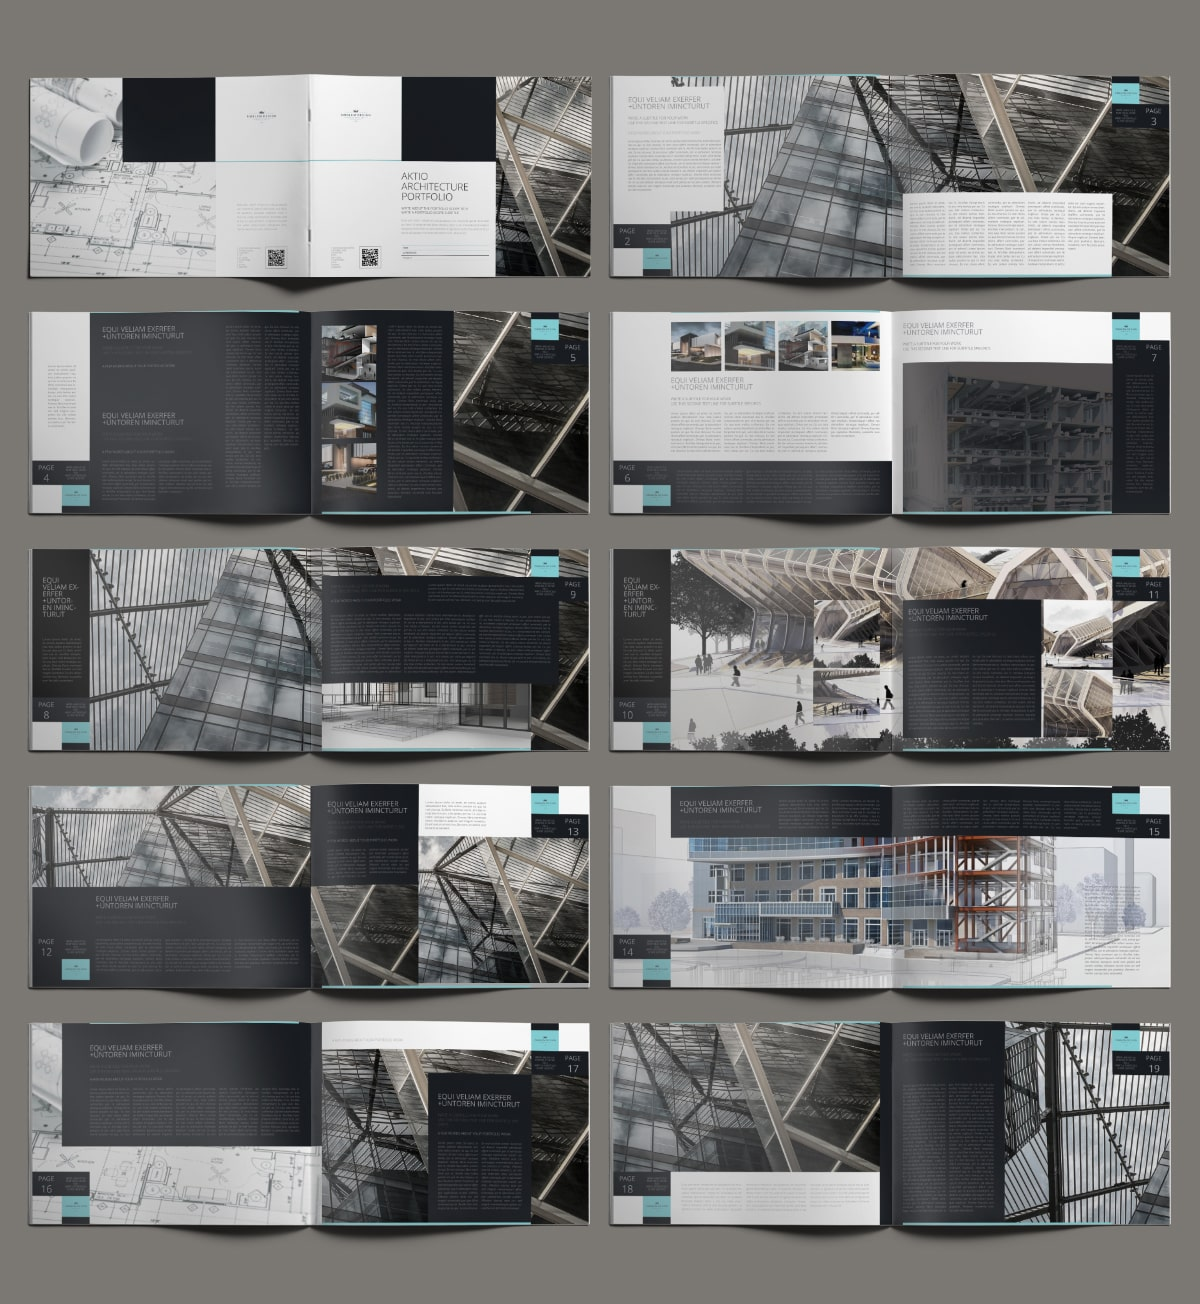 Aktio Architecture Portfolio A4 Landscape - Layouts